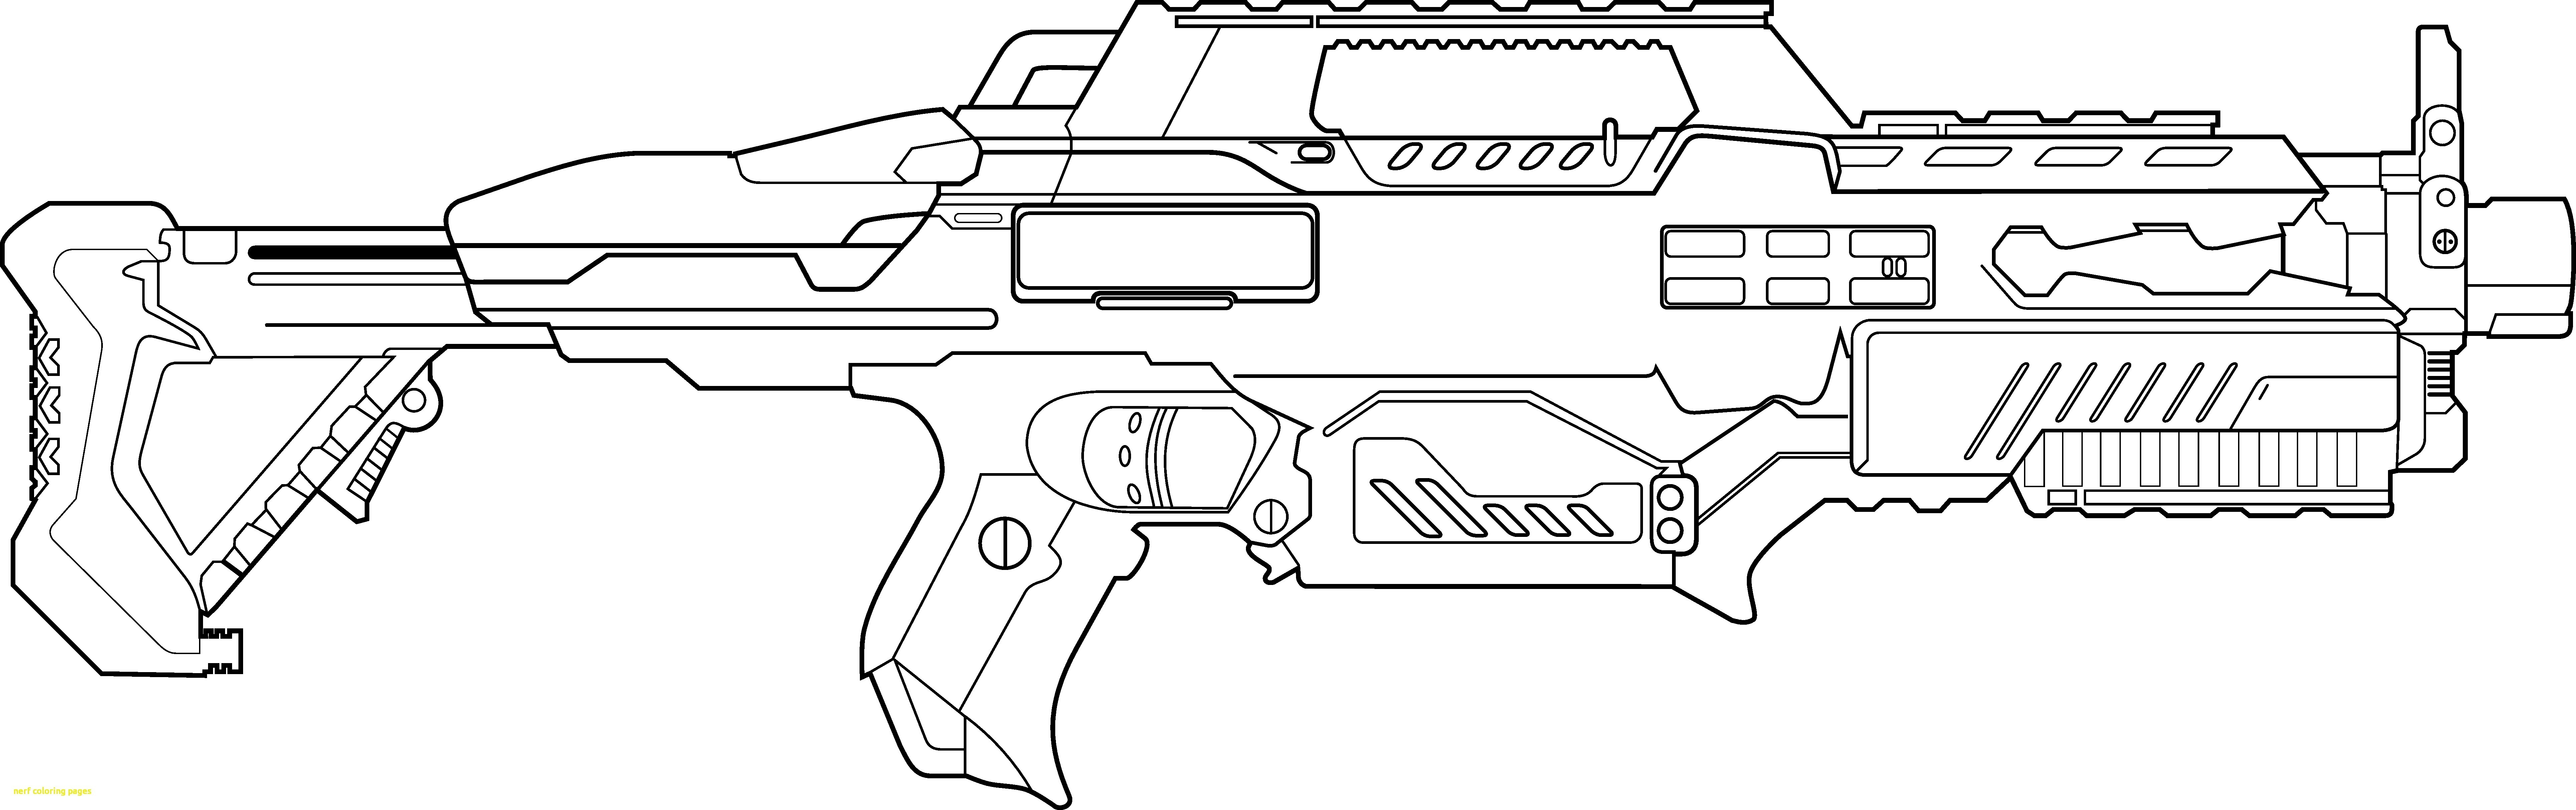 nerf gun coloring pages nerf gun coloring pages educative printable nerf gun pages coloring